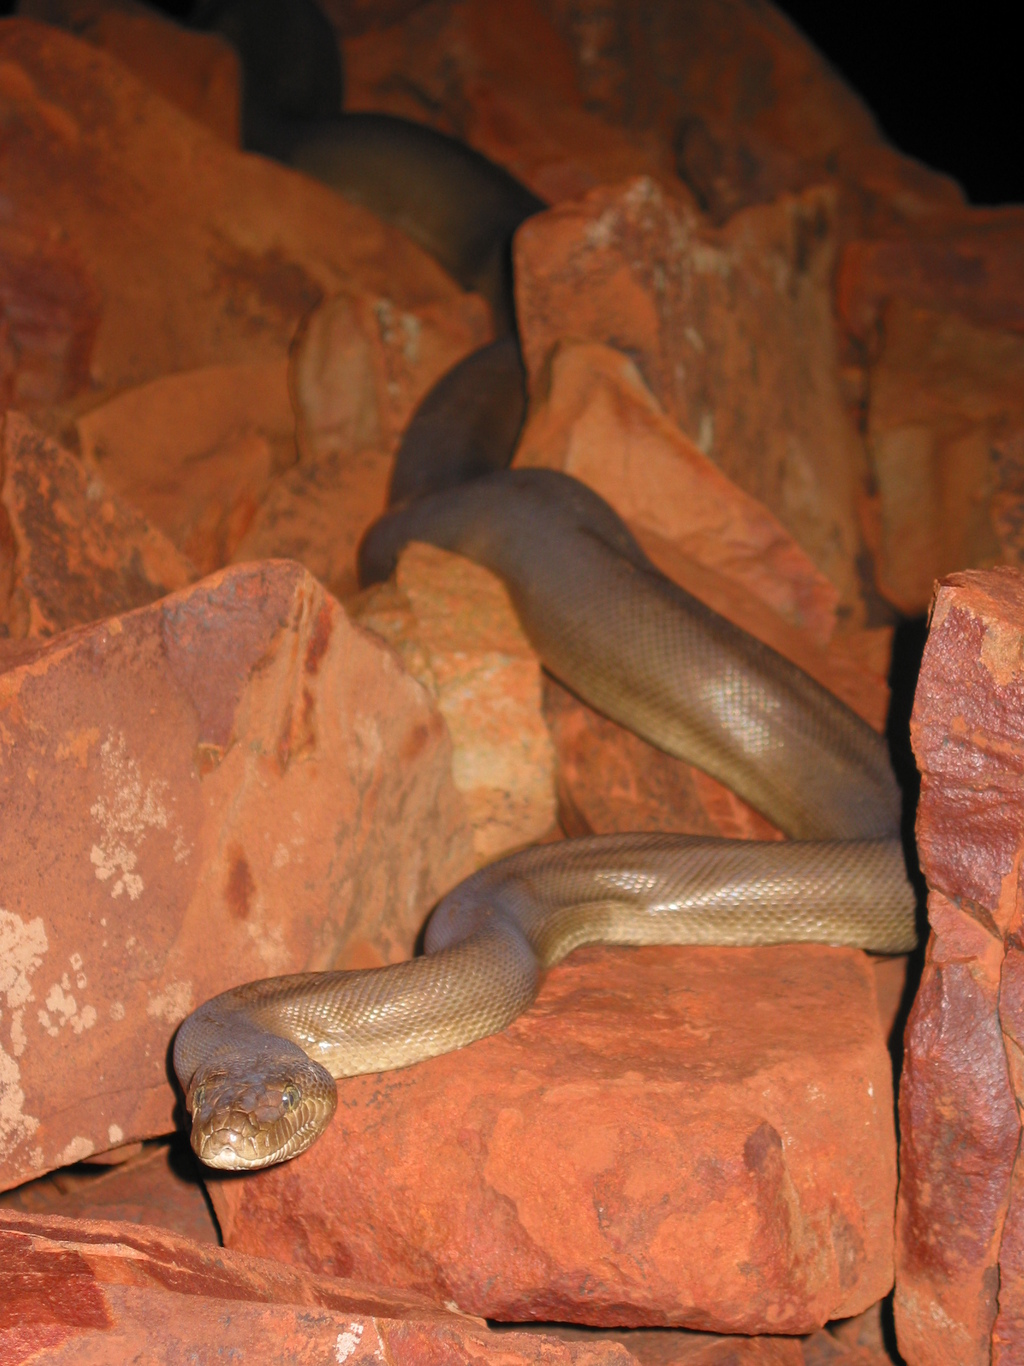 Pilbara olive python. Image: Michael Tutt/supplied